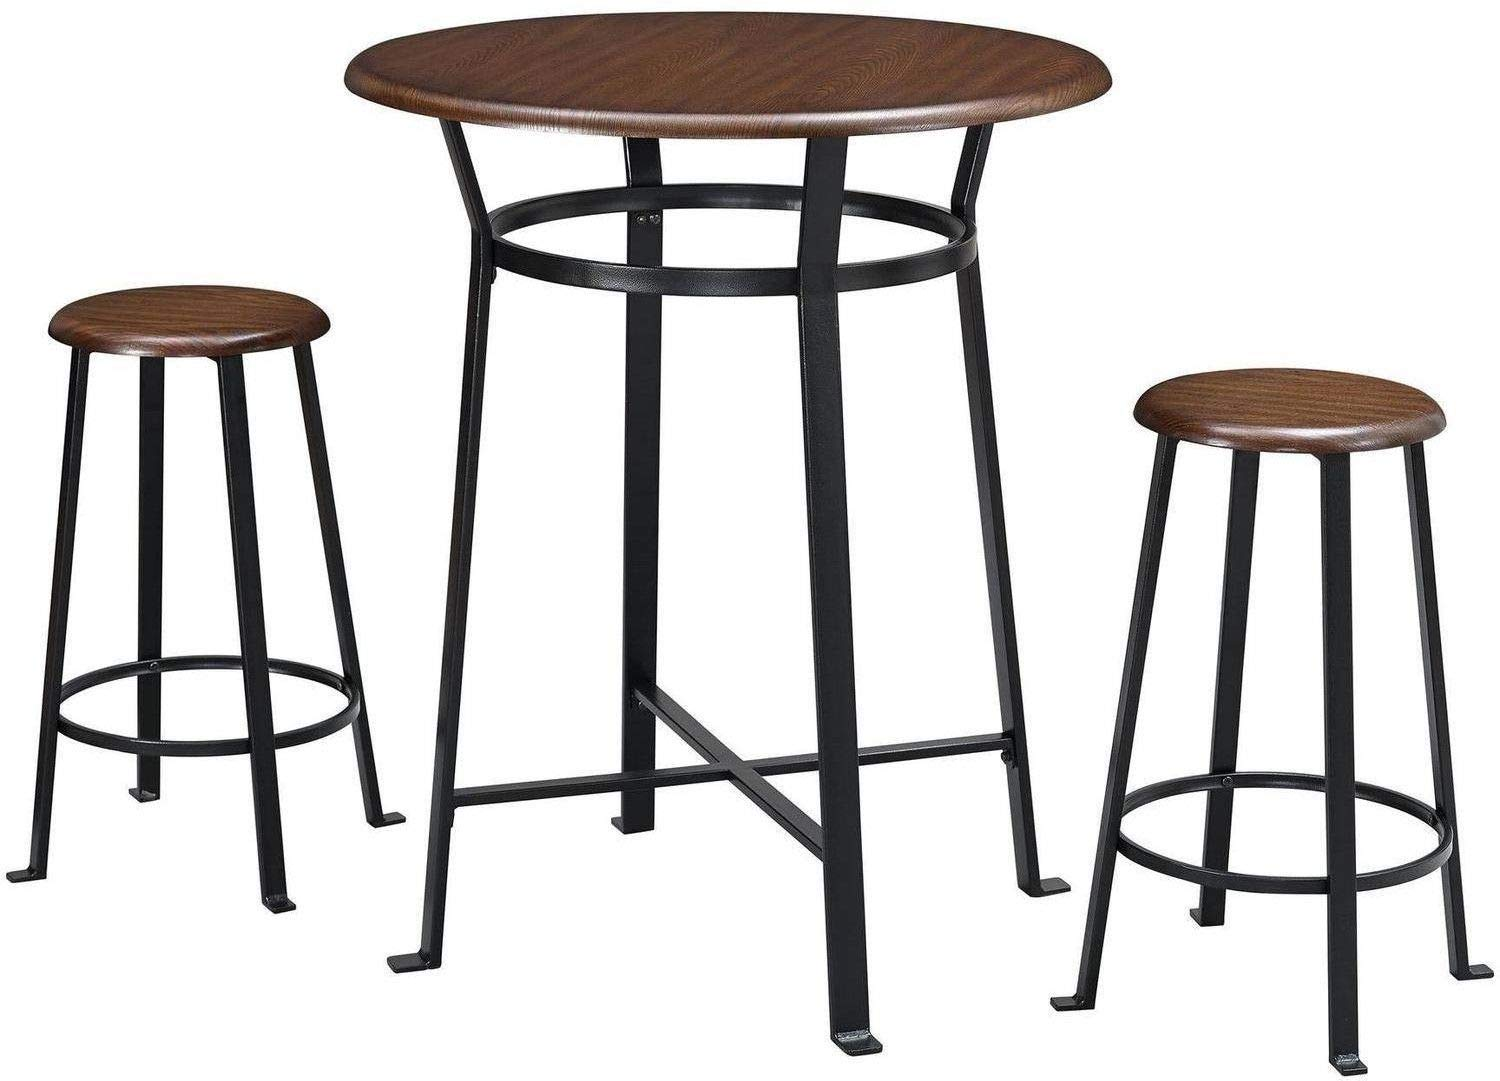 Pub Table Set 3 Piece Metal Frames Round Wooded Tops Stools Dark Mahogany Ideal Dining Room